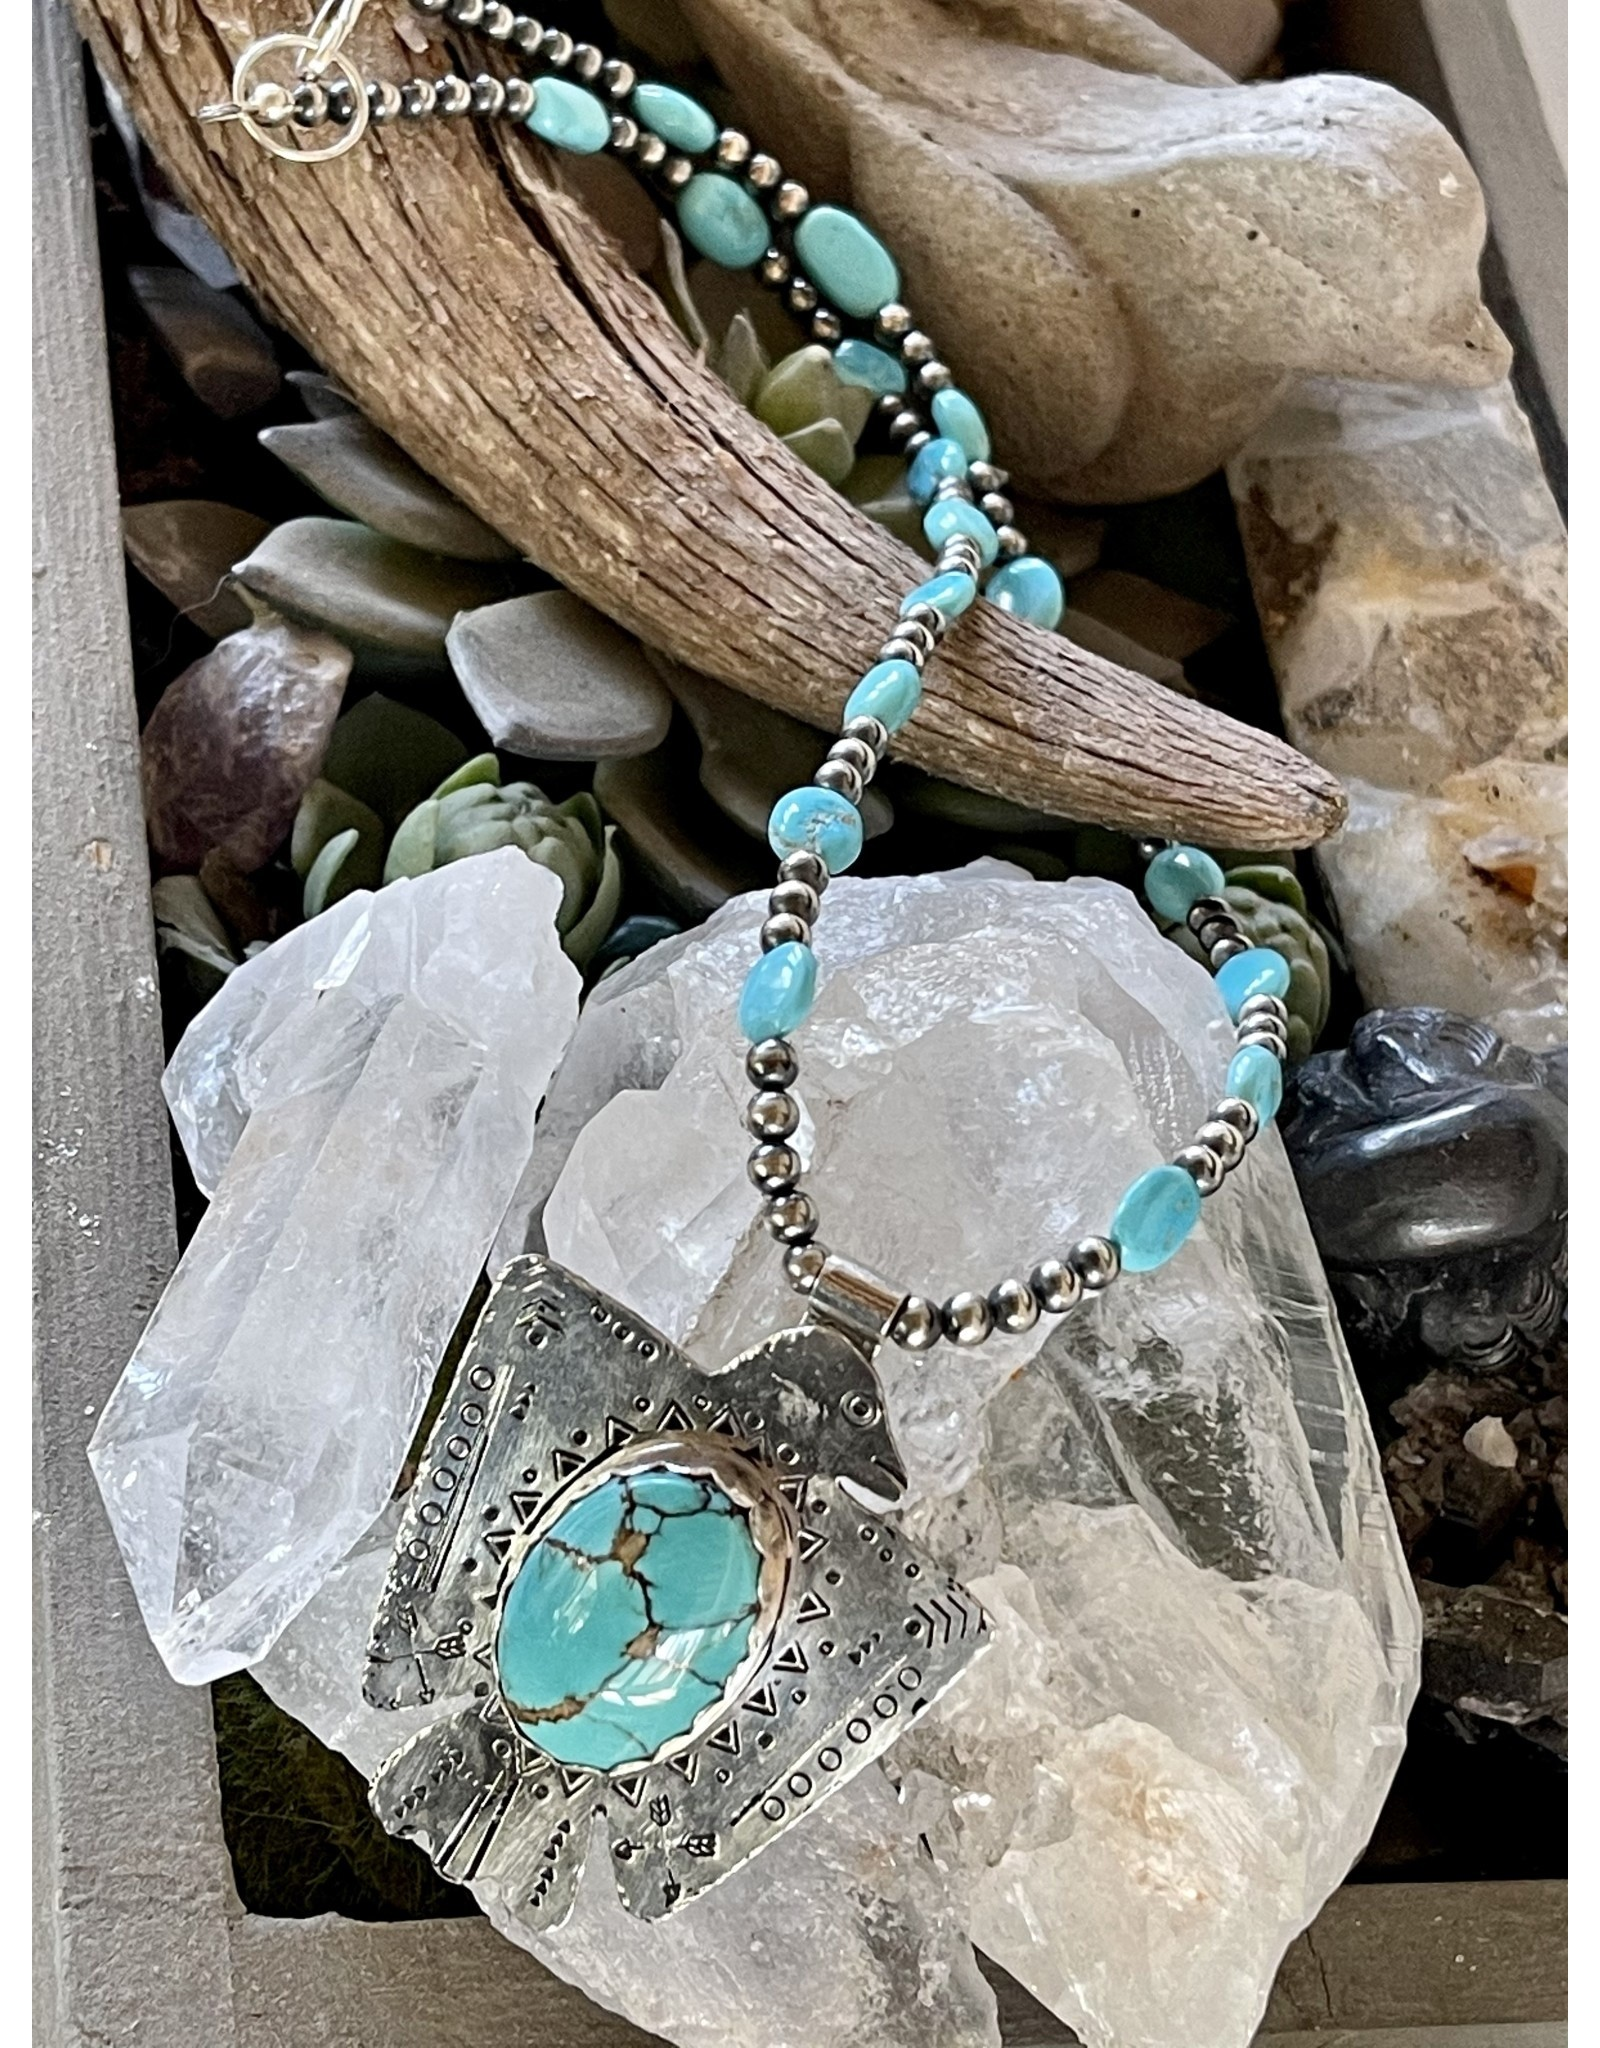 Annette Colby - Jeweler Royston Thunderbird, Sleeping Beauty Necklace by Annette Colby